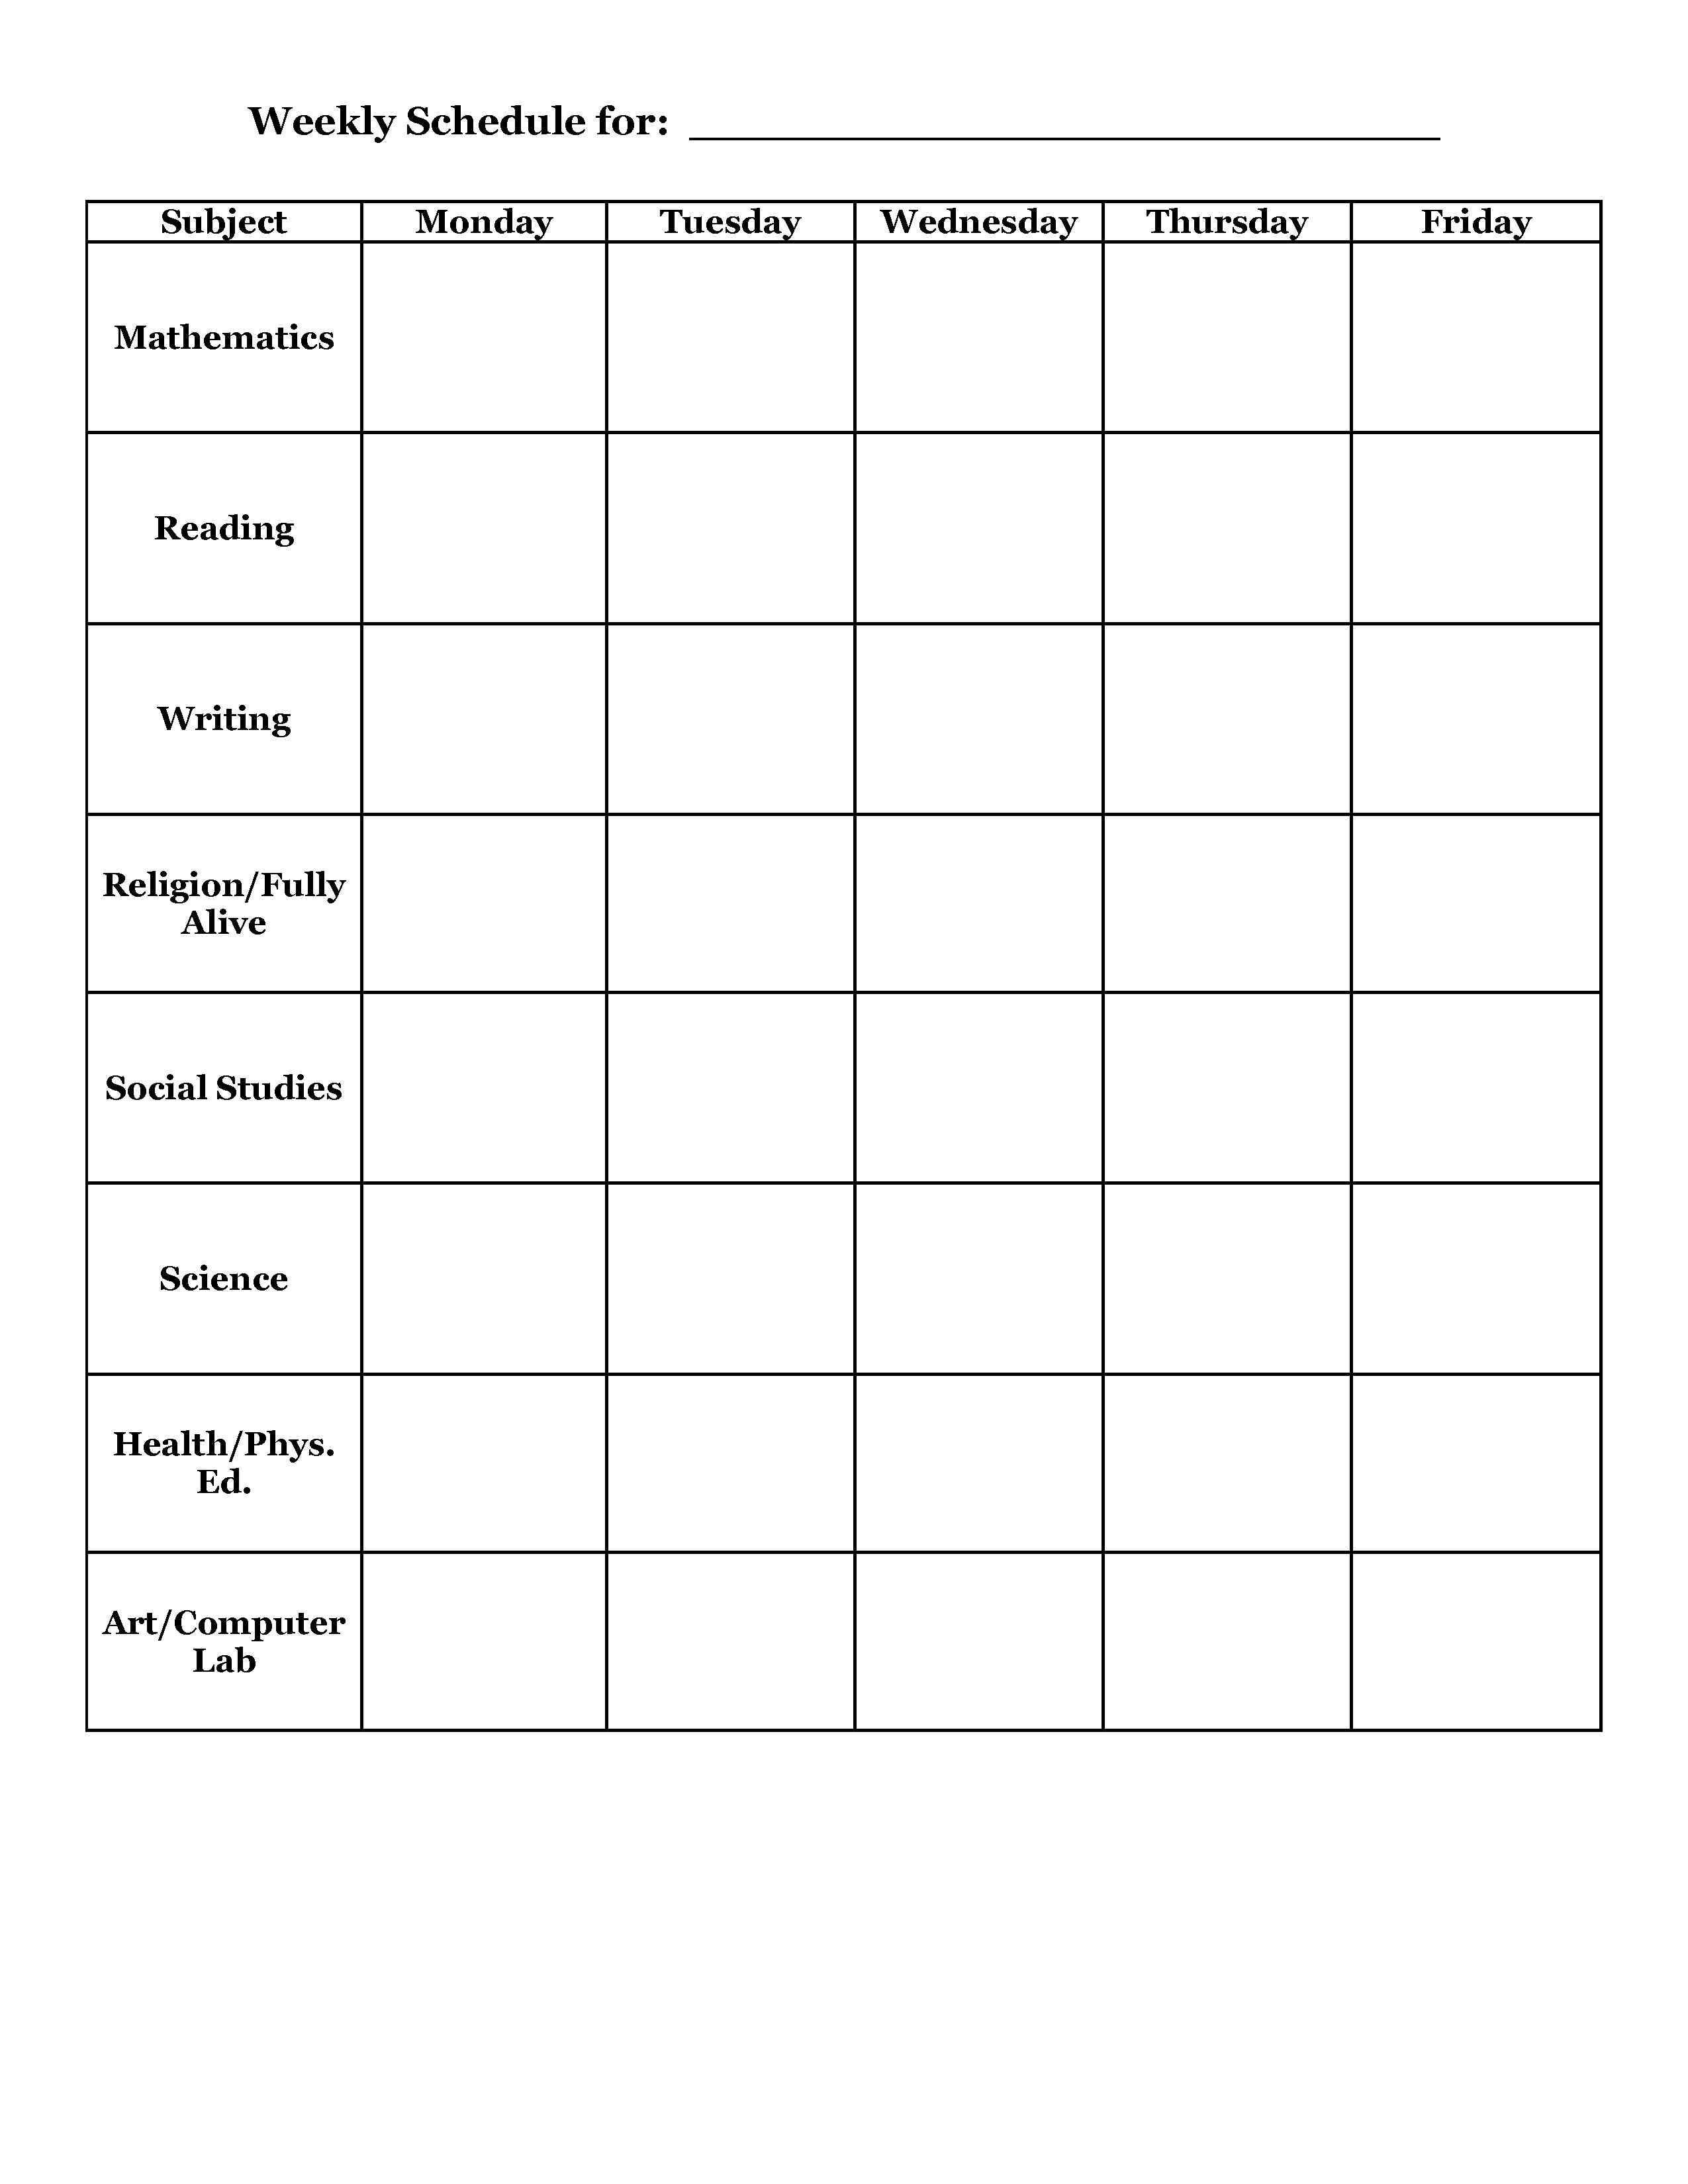 Weekly Class Schedule Template Student Planner Templates